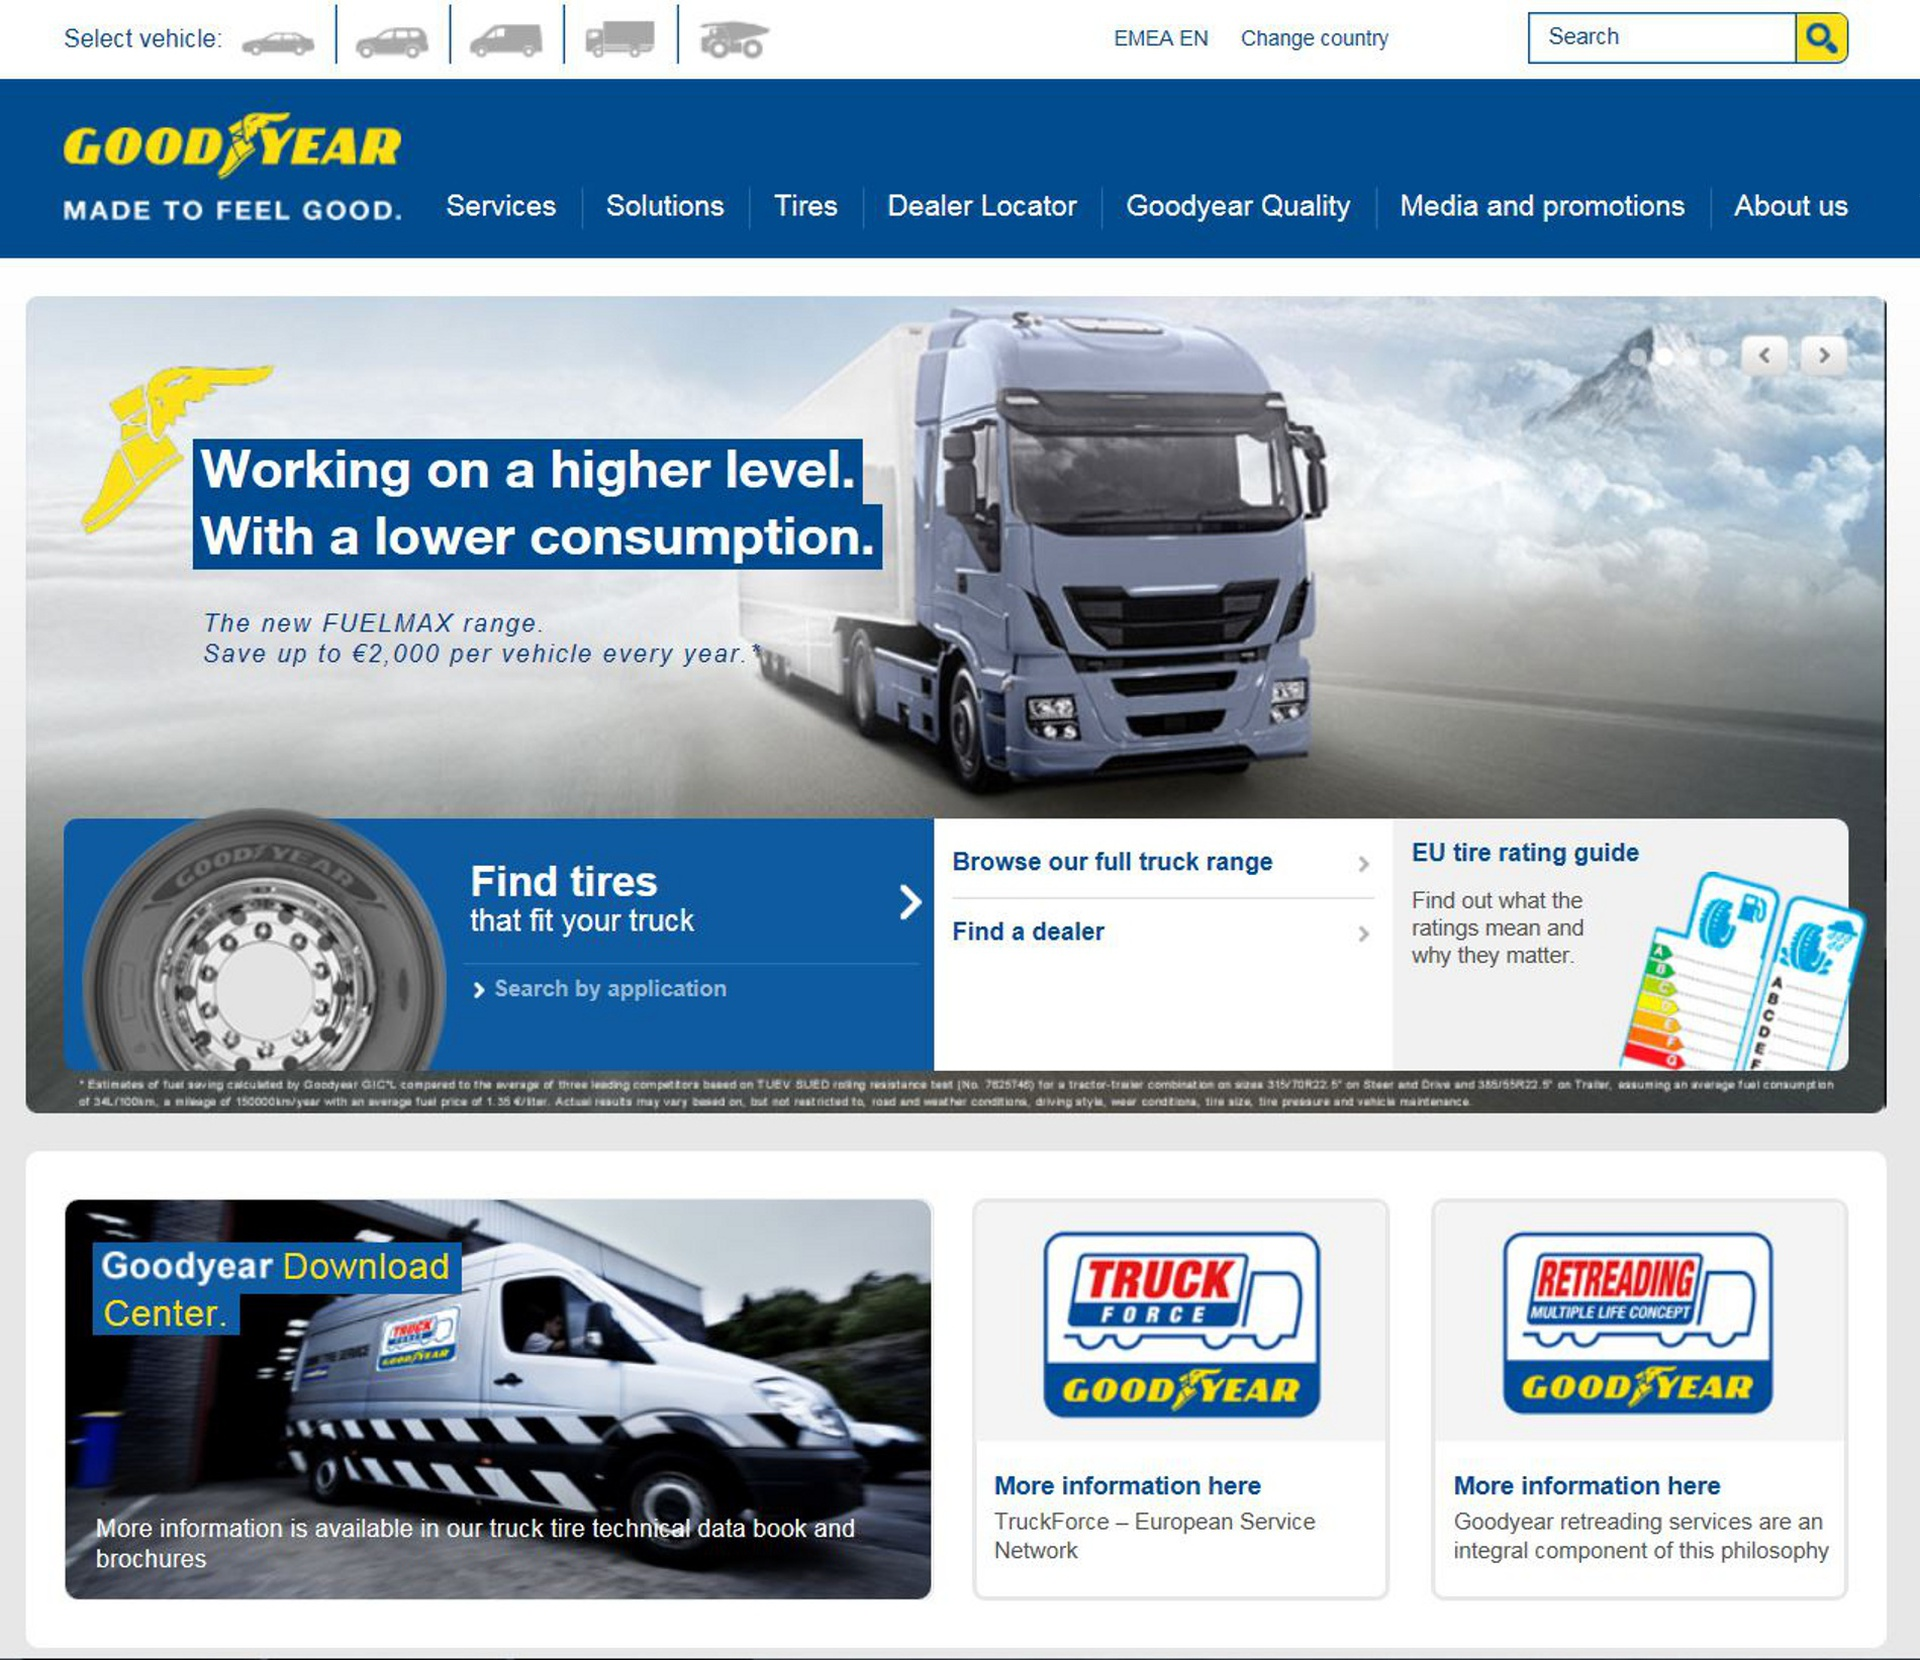 New Goodyear Truck Website